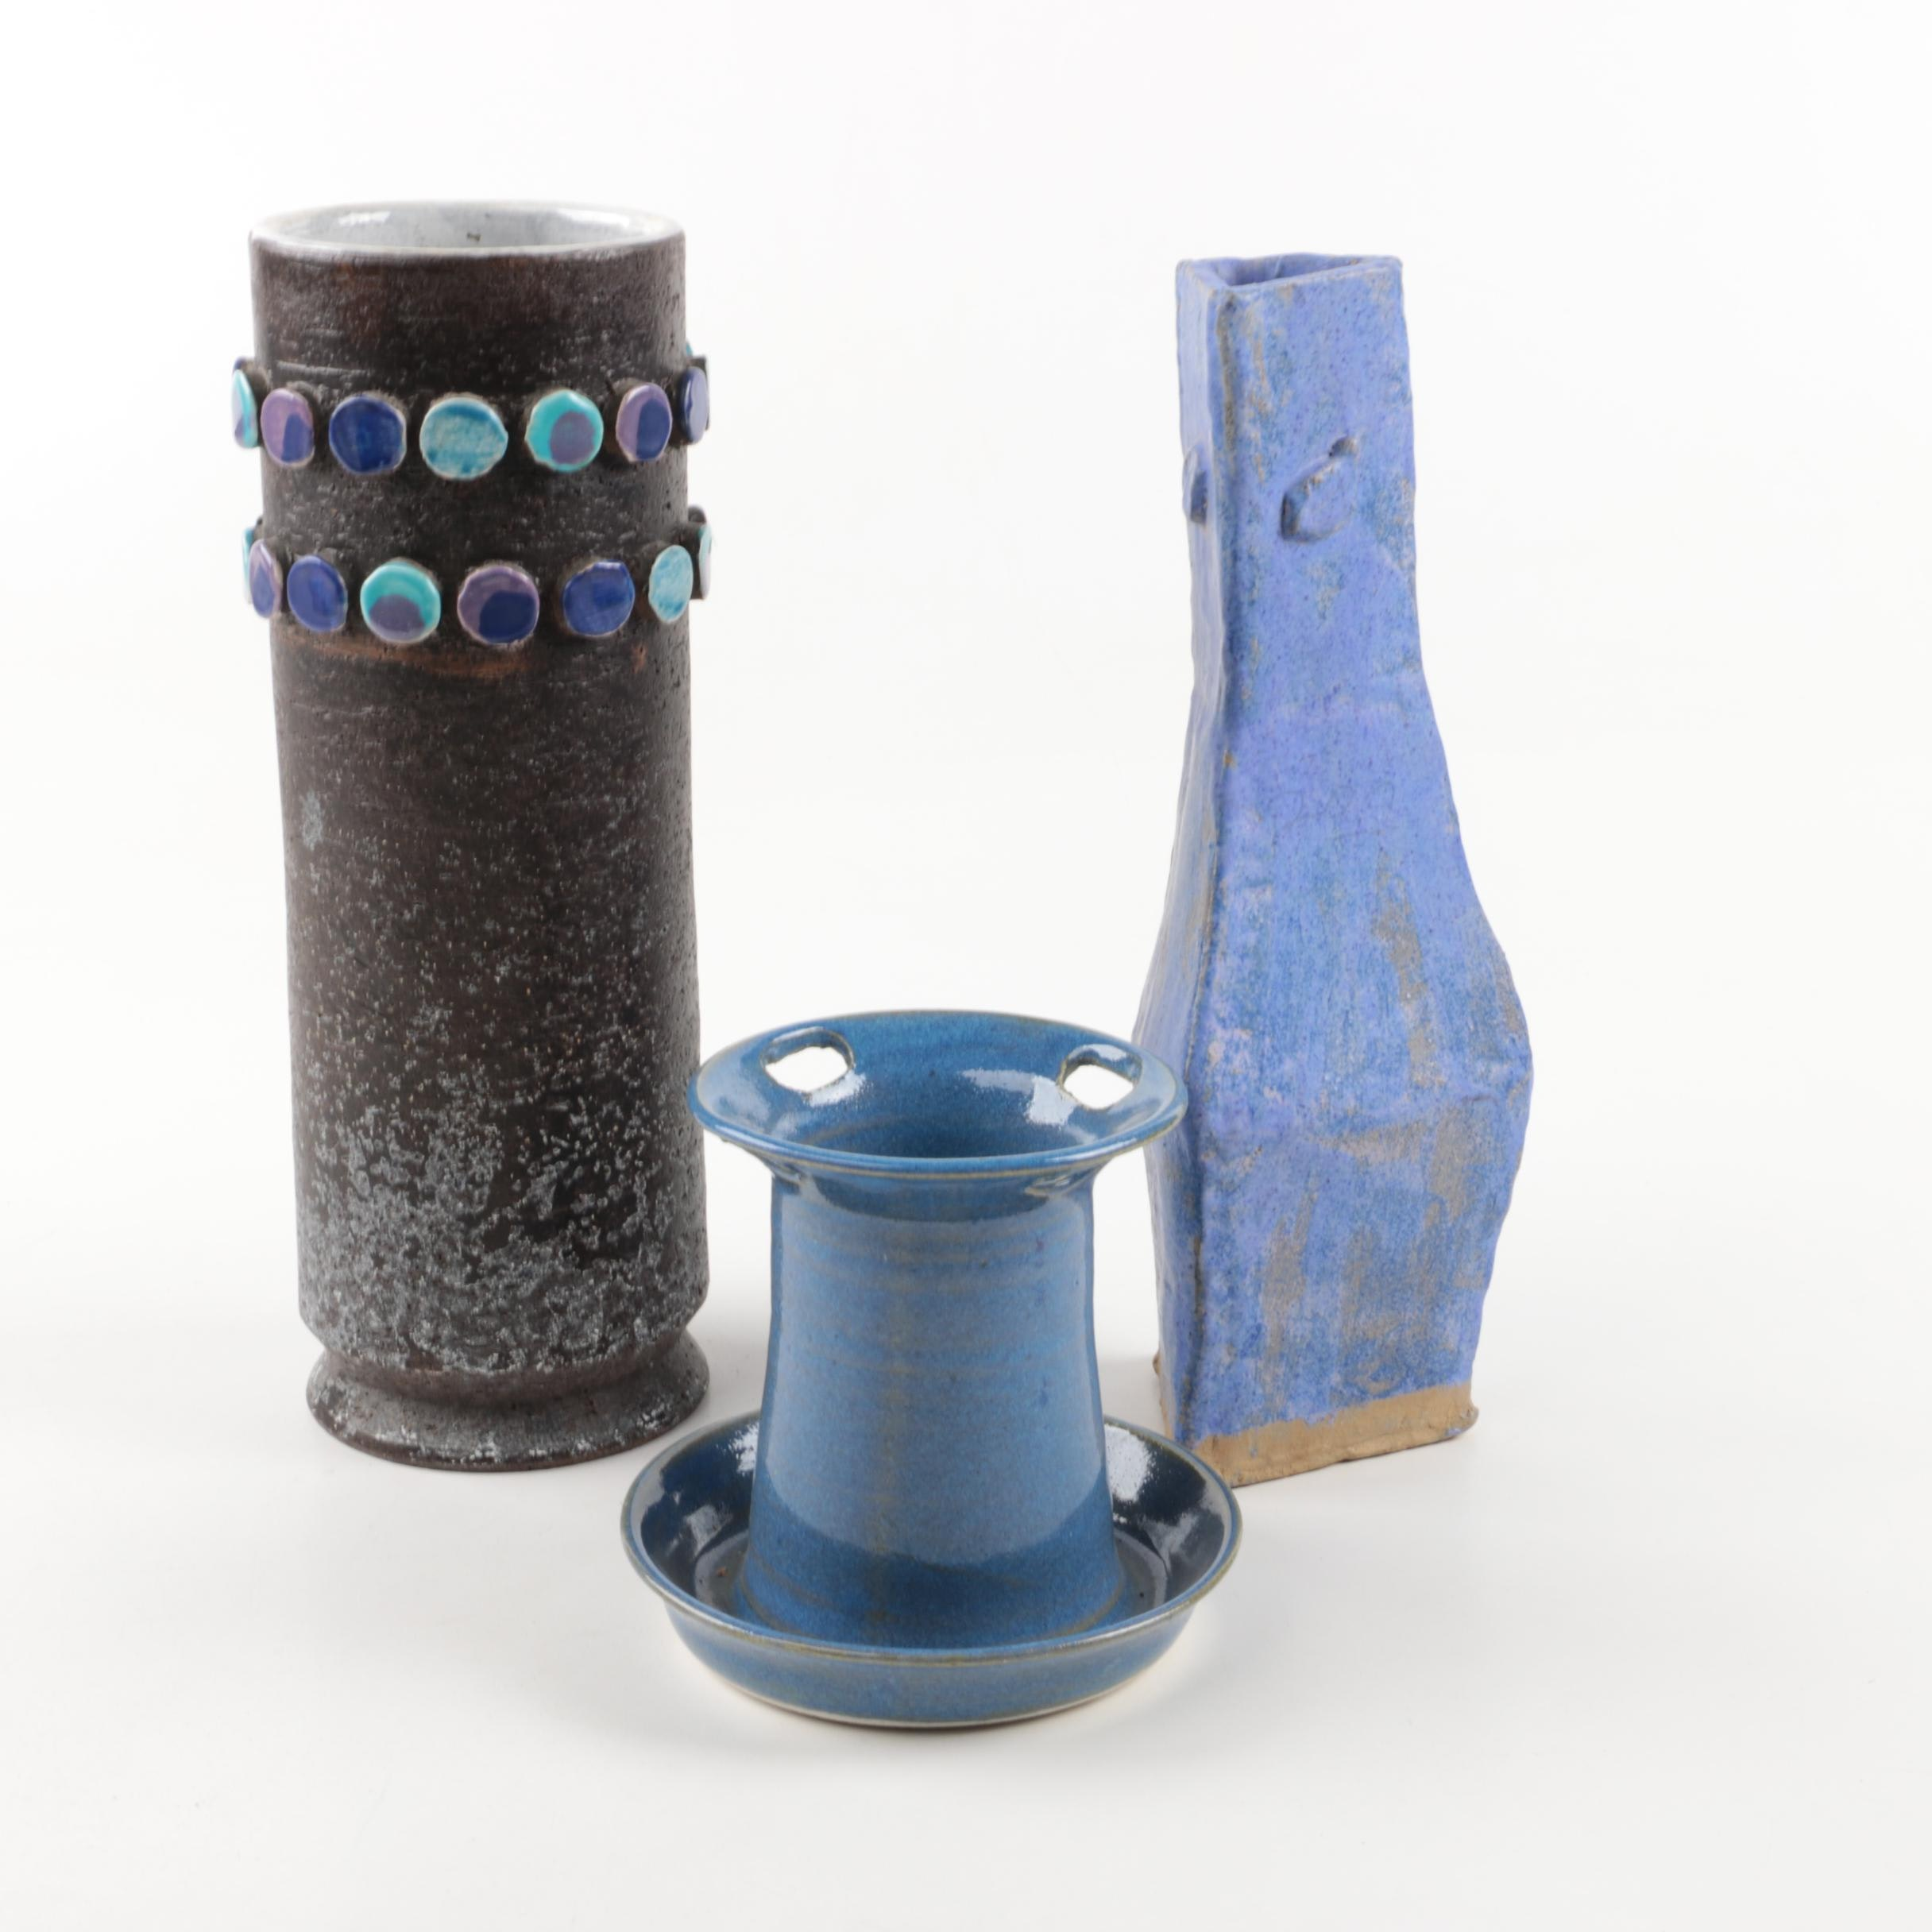 Hand Built and Thrown Ceramic Vessels